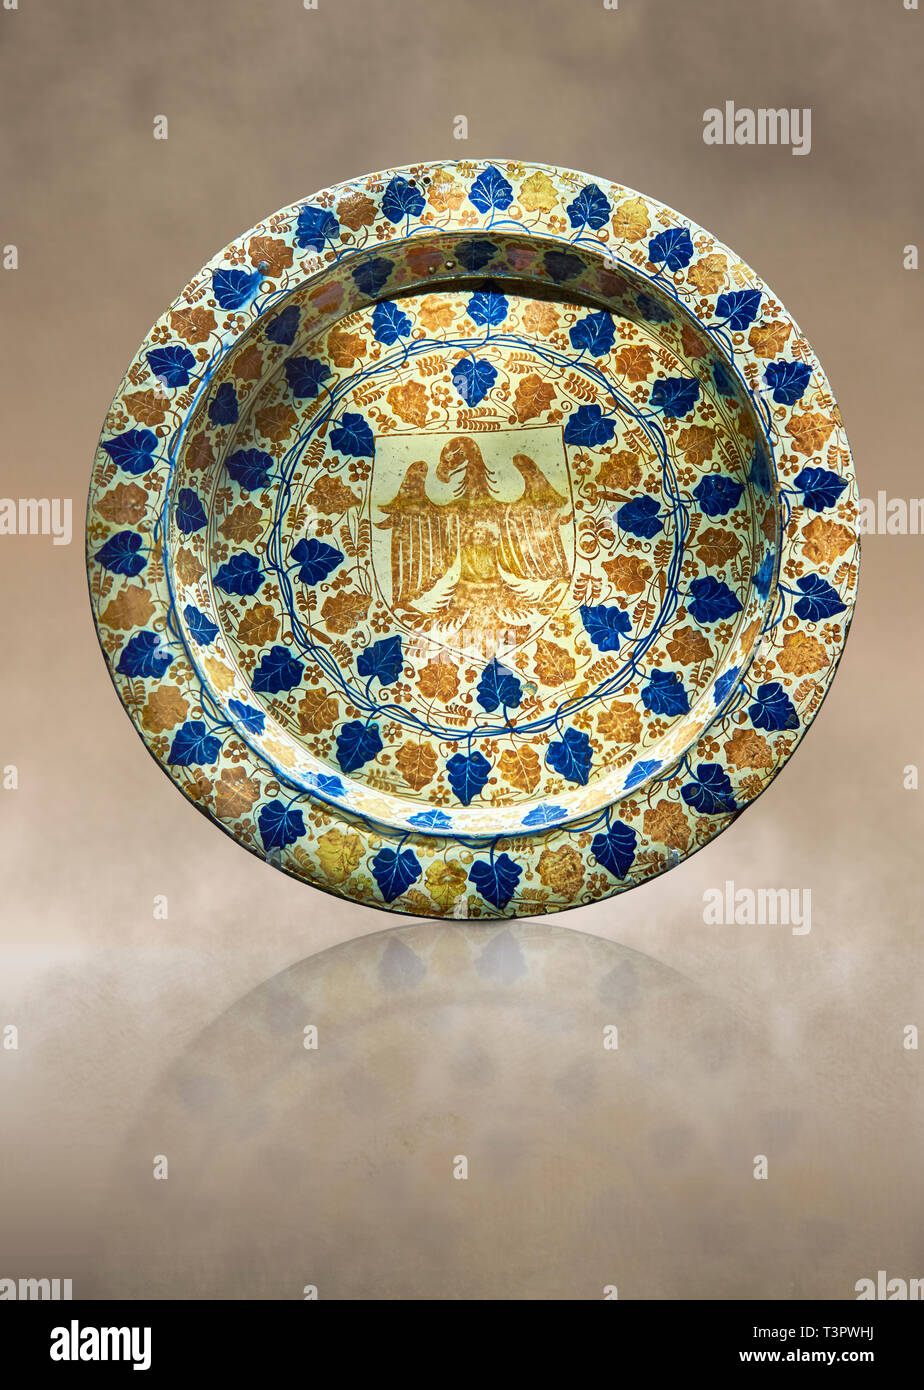 Hispano-Moresque ware dish with an eagle motif. Faience lustre ware, an islamic pottery style produced in Manises, Al Andalus, present day Spain in th - Stock Image